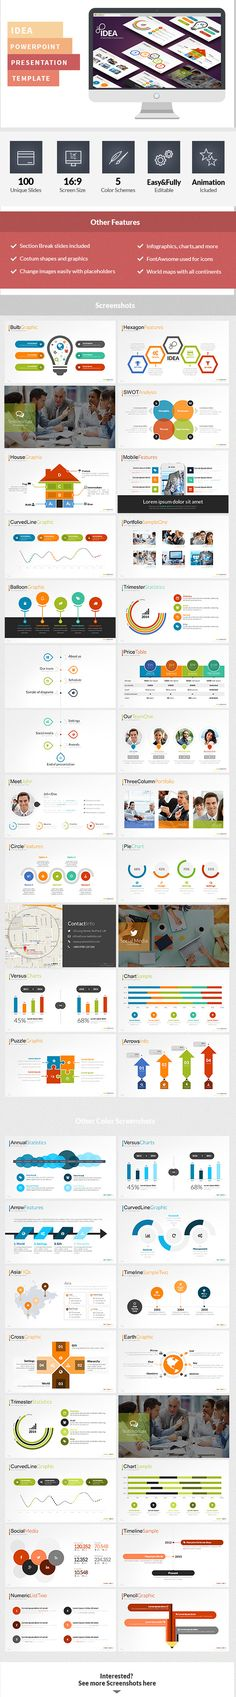 Flyspa Professional Powerpoint  Professional Powerpoint